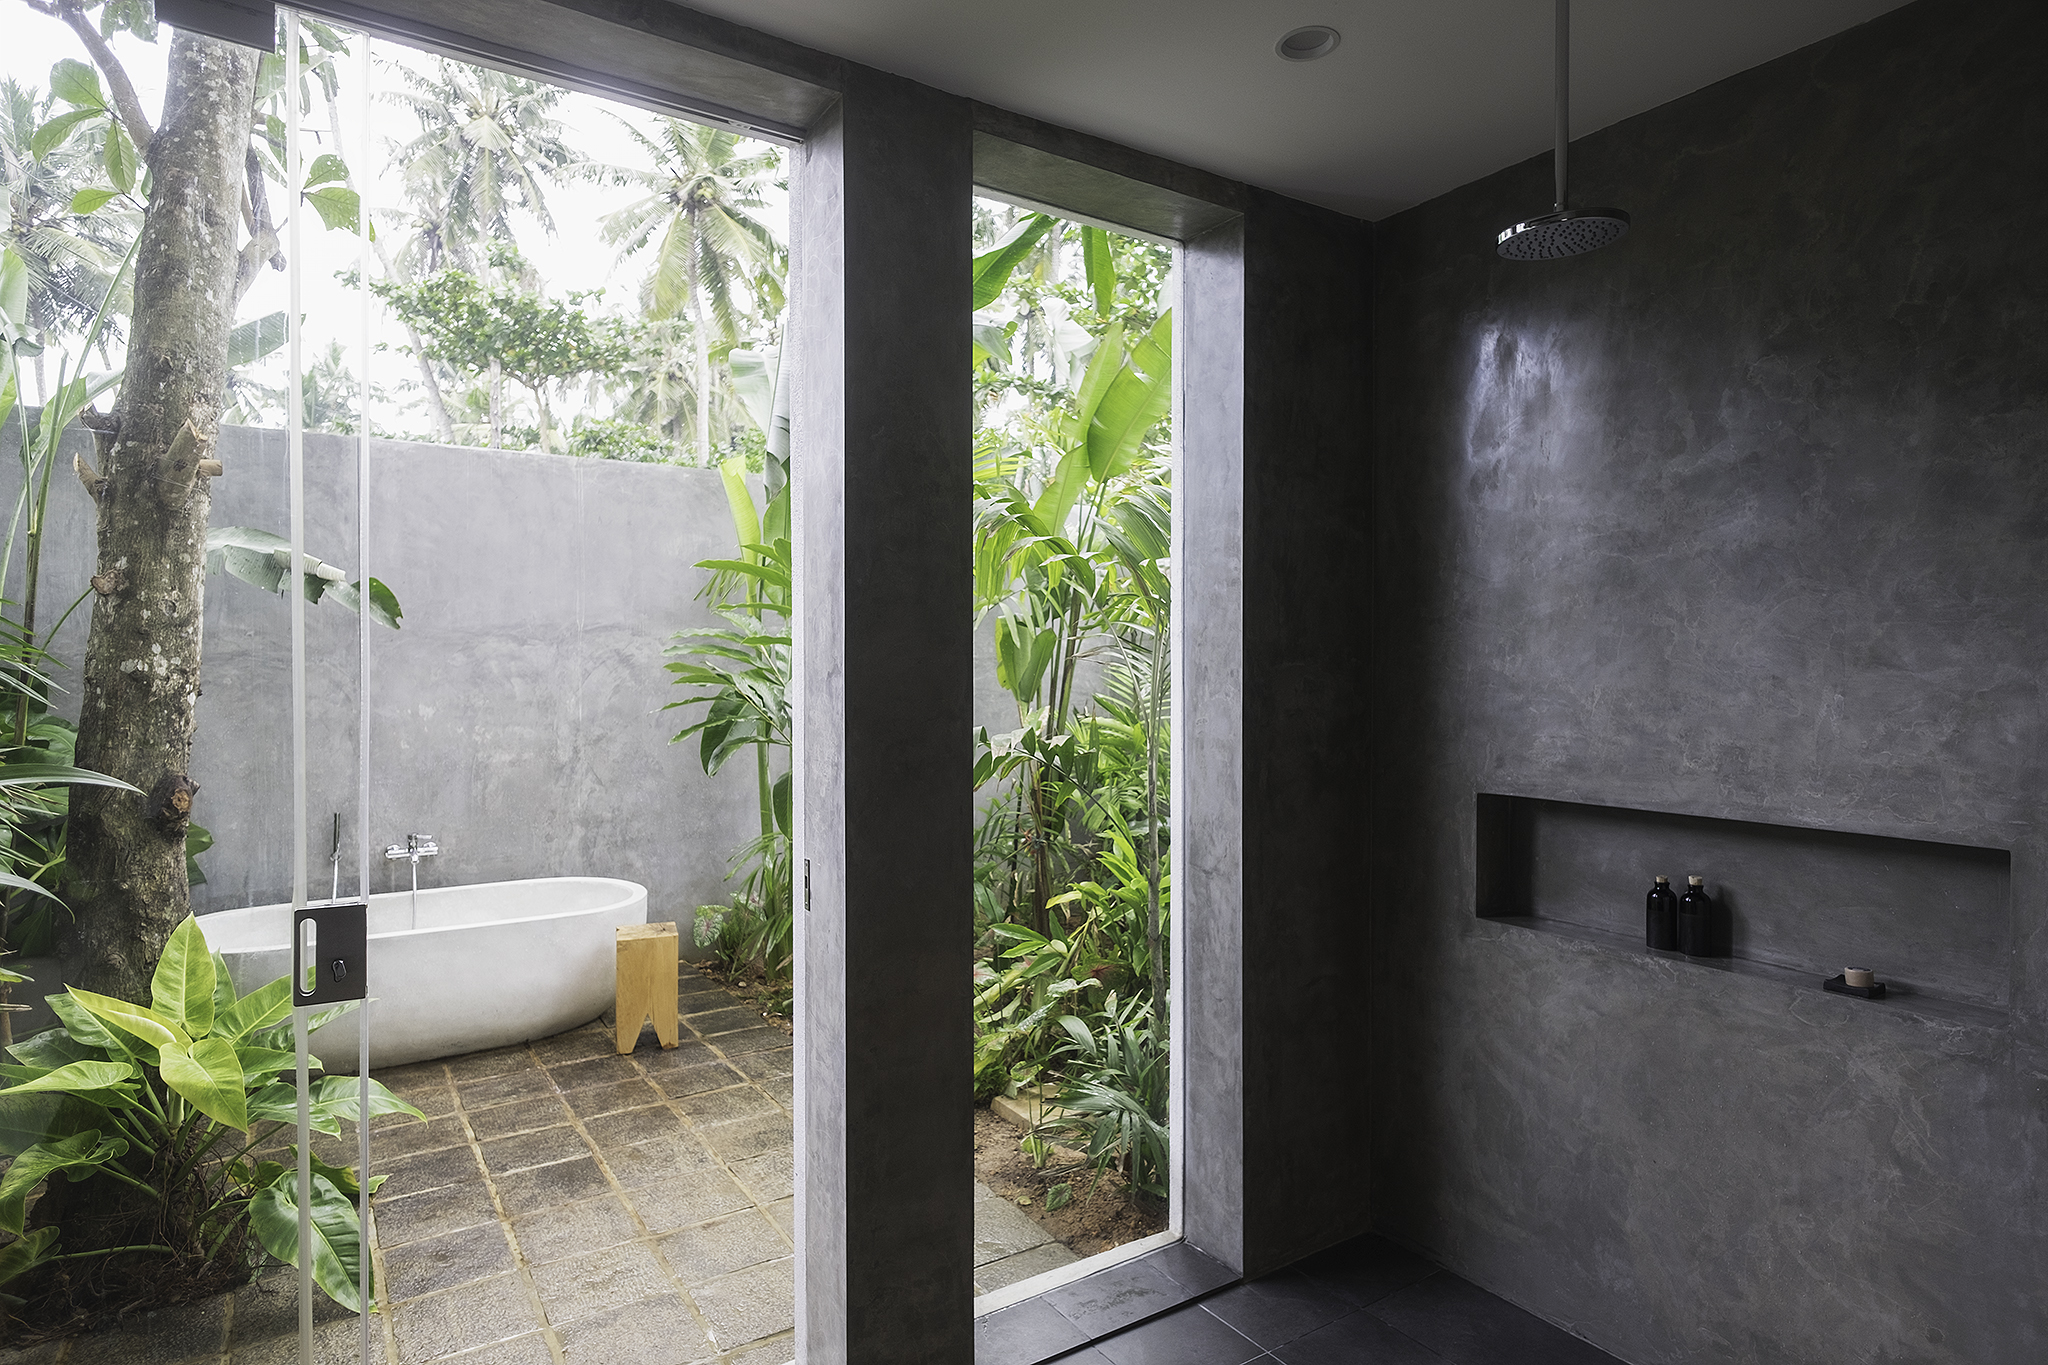 Sri Lanka House Bathroom Design : House tour woolamai beach